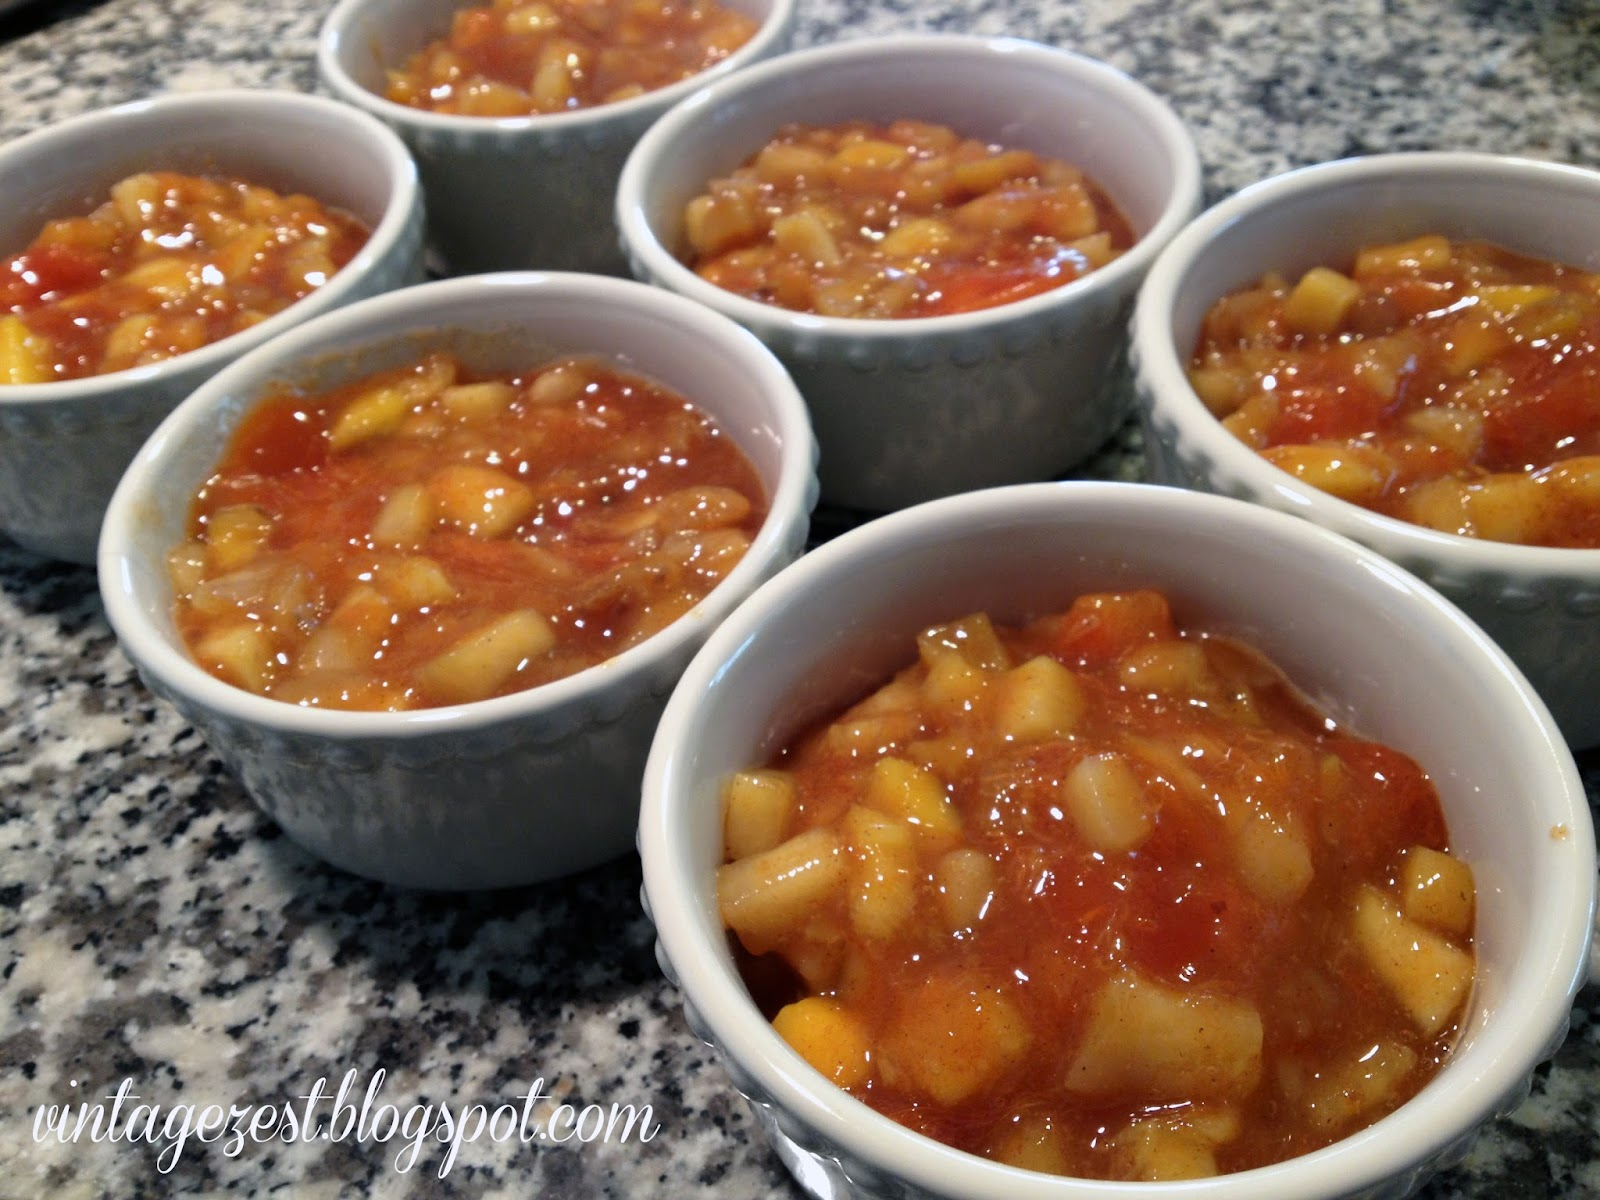 Persimmon, Pear, and Mango Cobbler